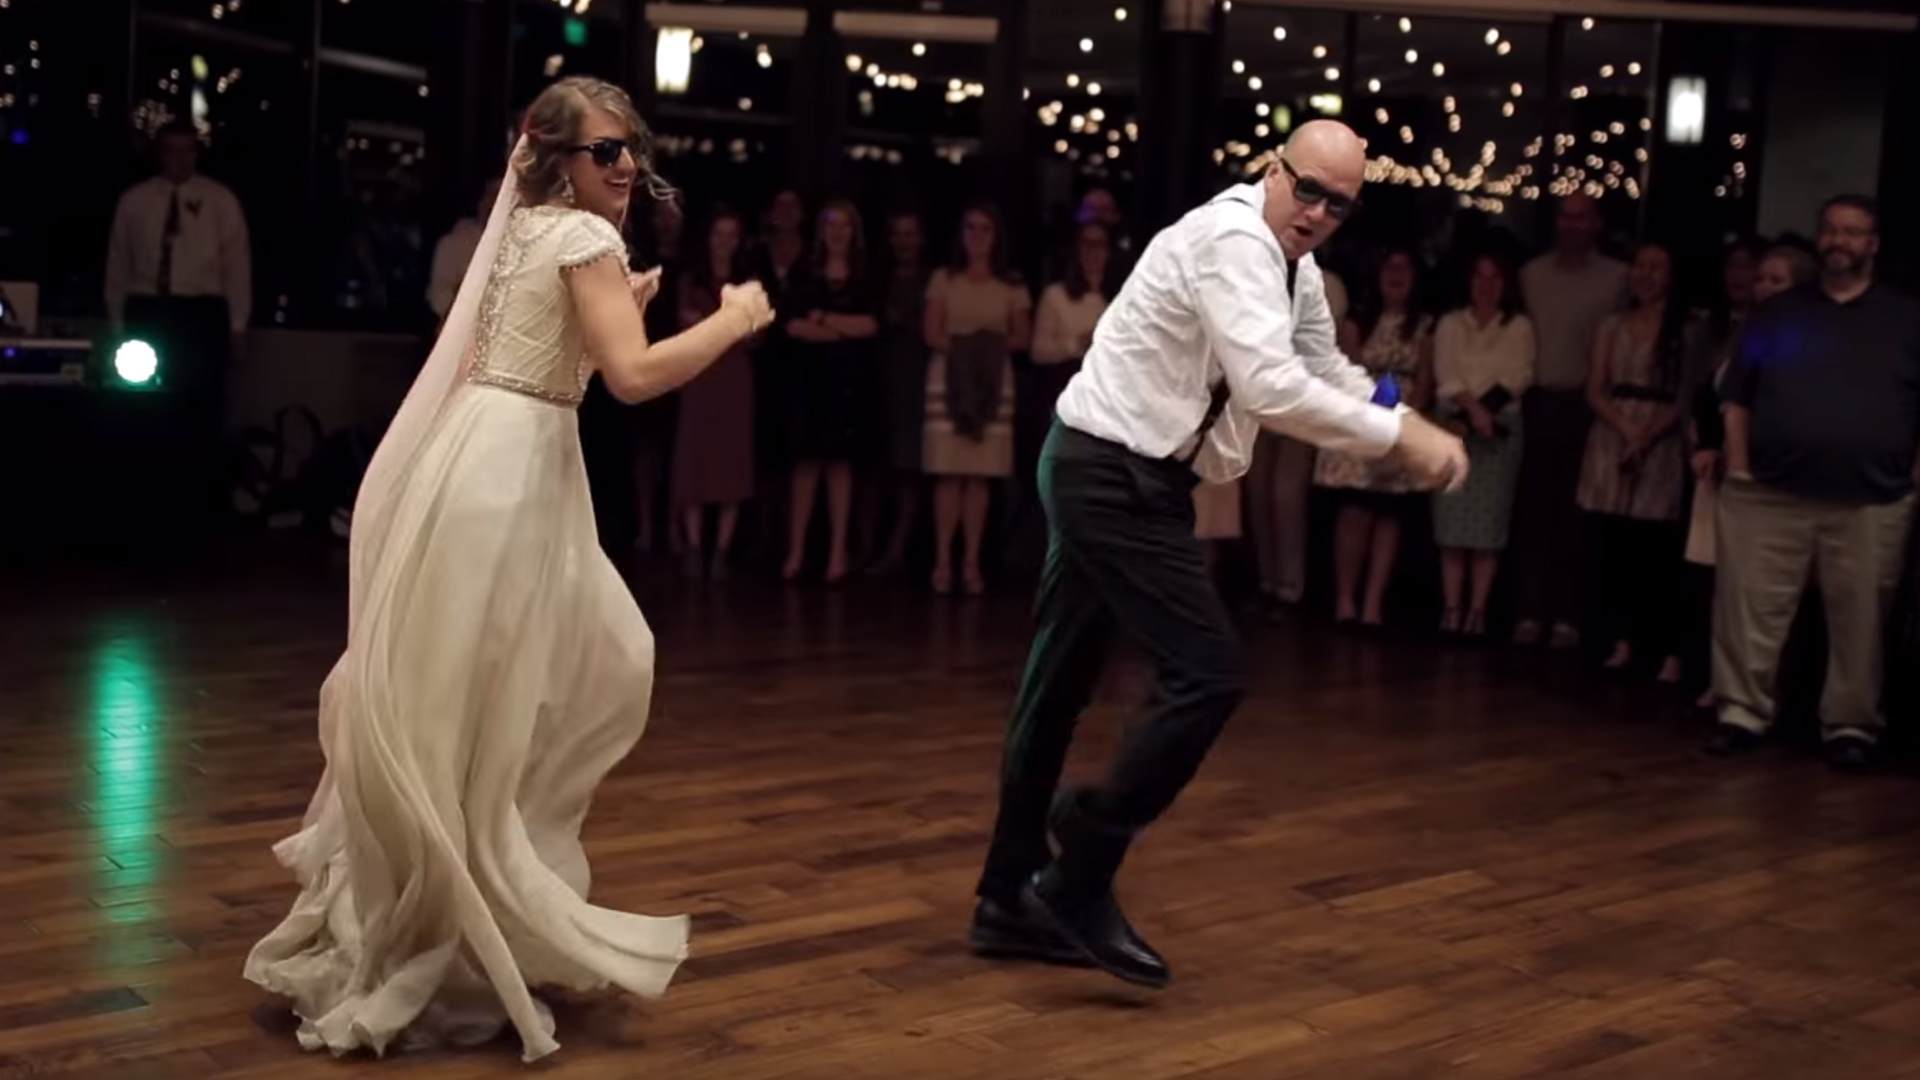 Bride Mikayla Ellison Phillips Has The Most Epic Wedding Dance With Father